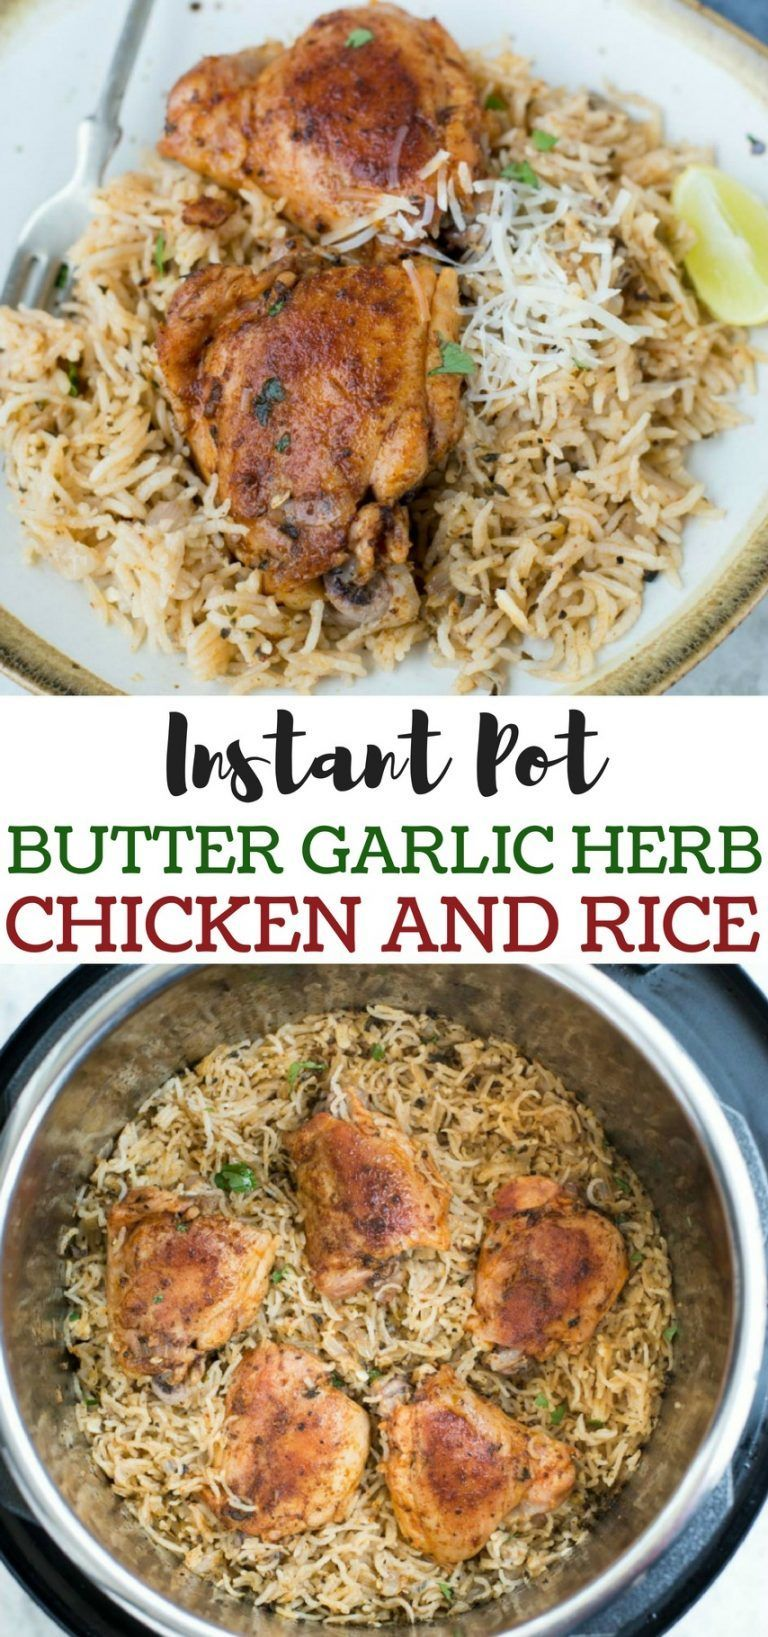 #instantpot #wholesome #chicken #chicken #buttery #instant #chicken #dinner #entire #garlic #fluffy...